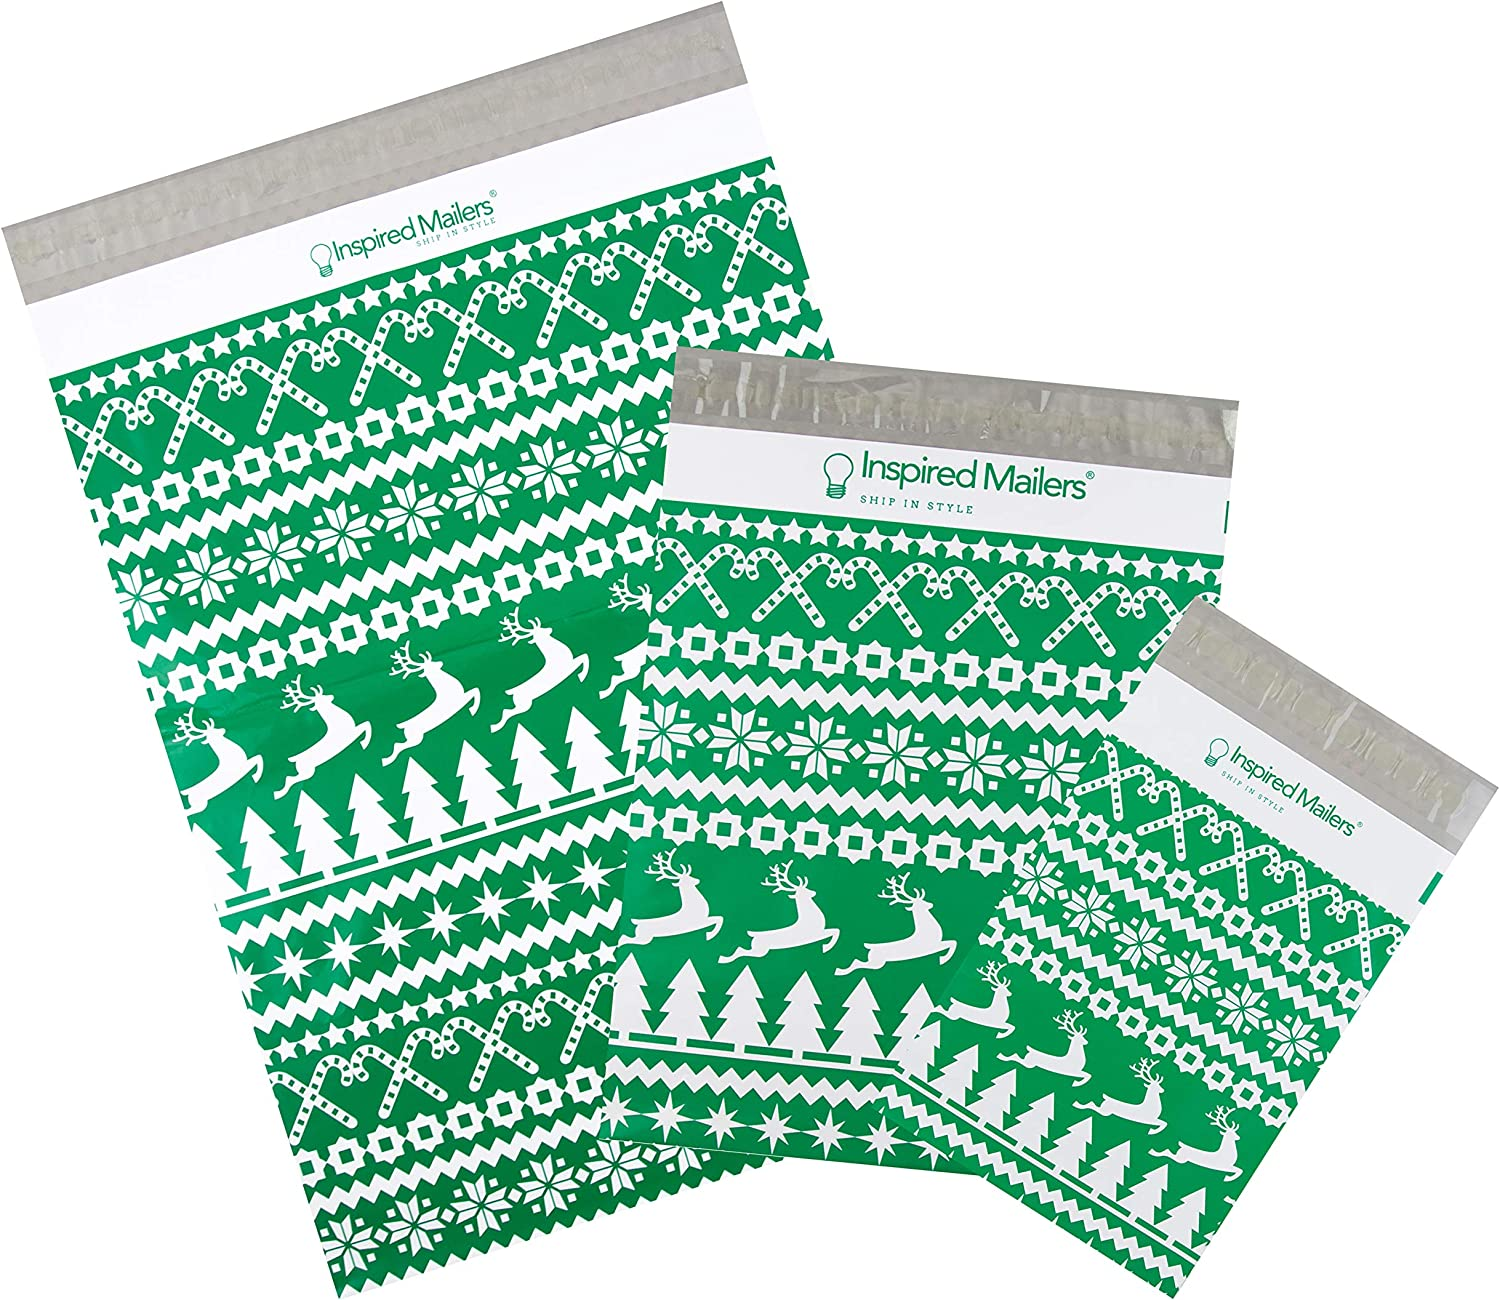 Inspired Mailers - Holiday Poly Mailers Variety Pack of 30 (10 Each: 6x9, 10x13, 14.5x19 Sizes) - Christmas Sweater - Holiday Mailing Bags - Cute Packaging Envelopes